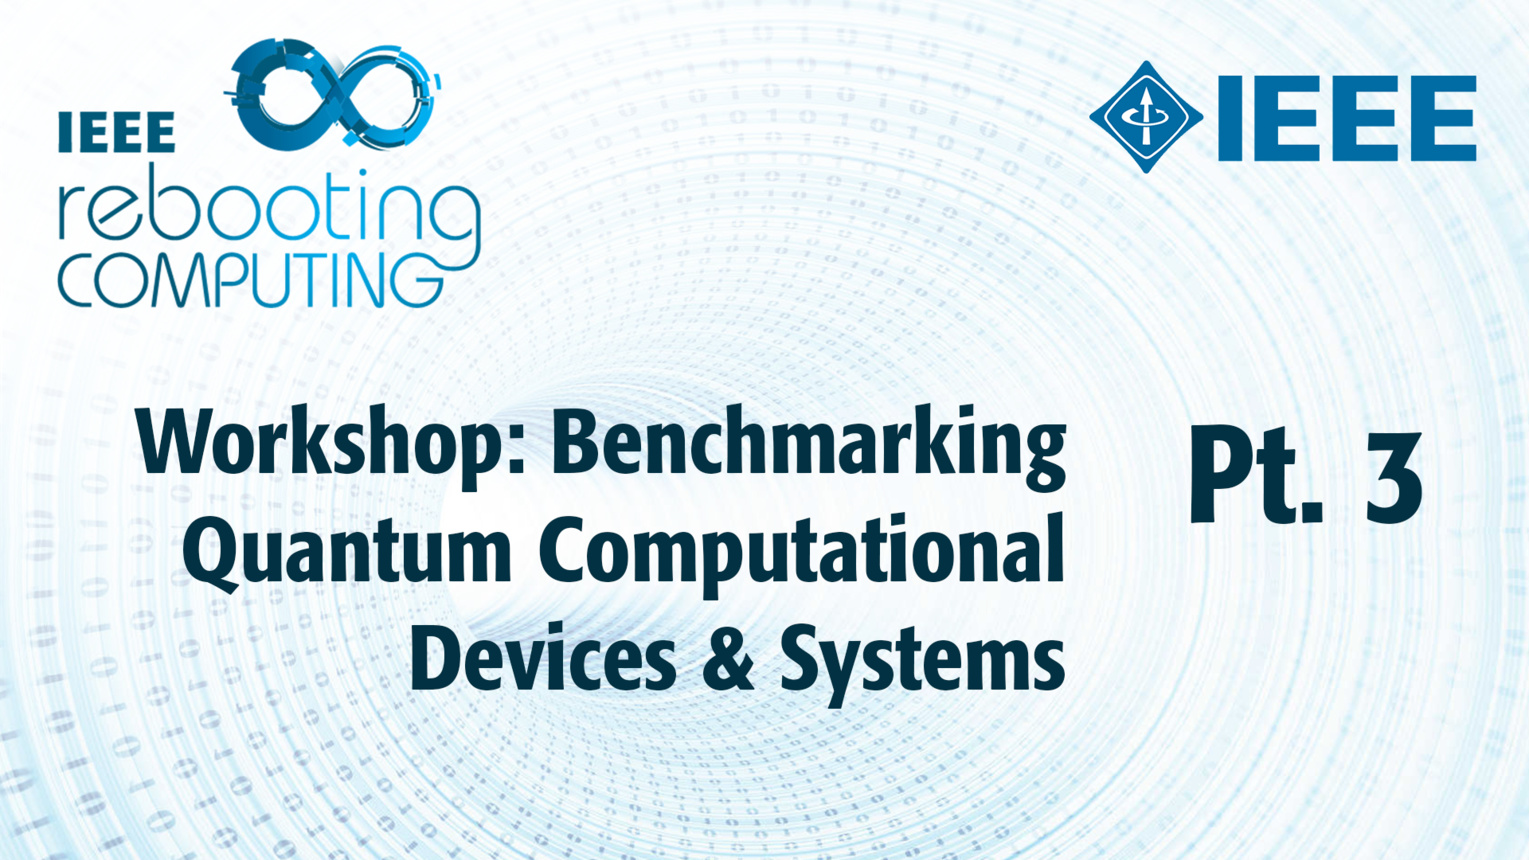 Part 3: Workshop on Benchmarking Quantum Computational Devices and Systems - ICRC 2018